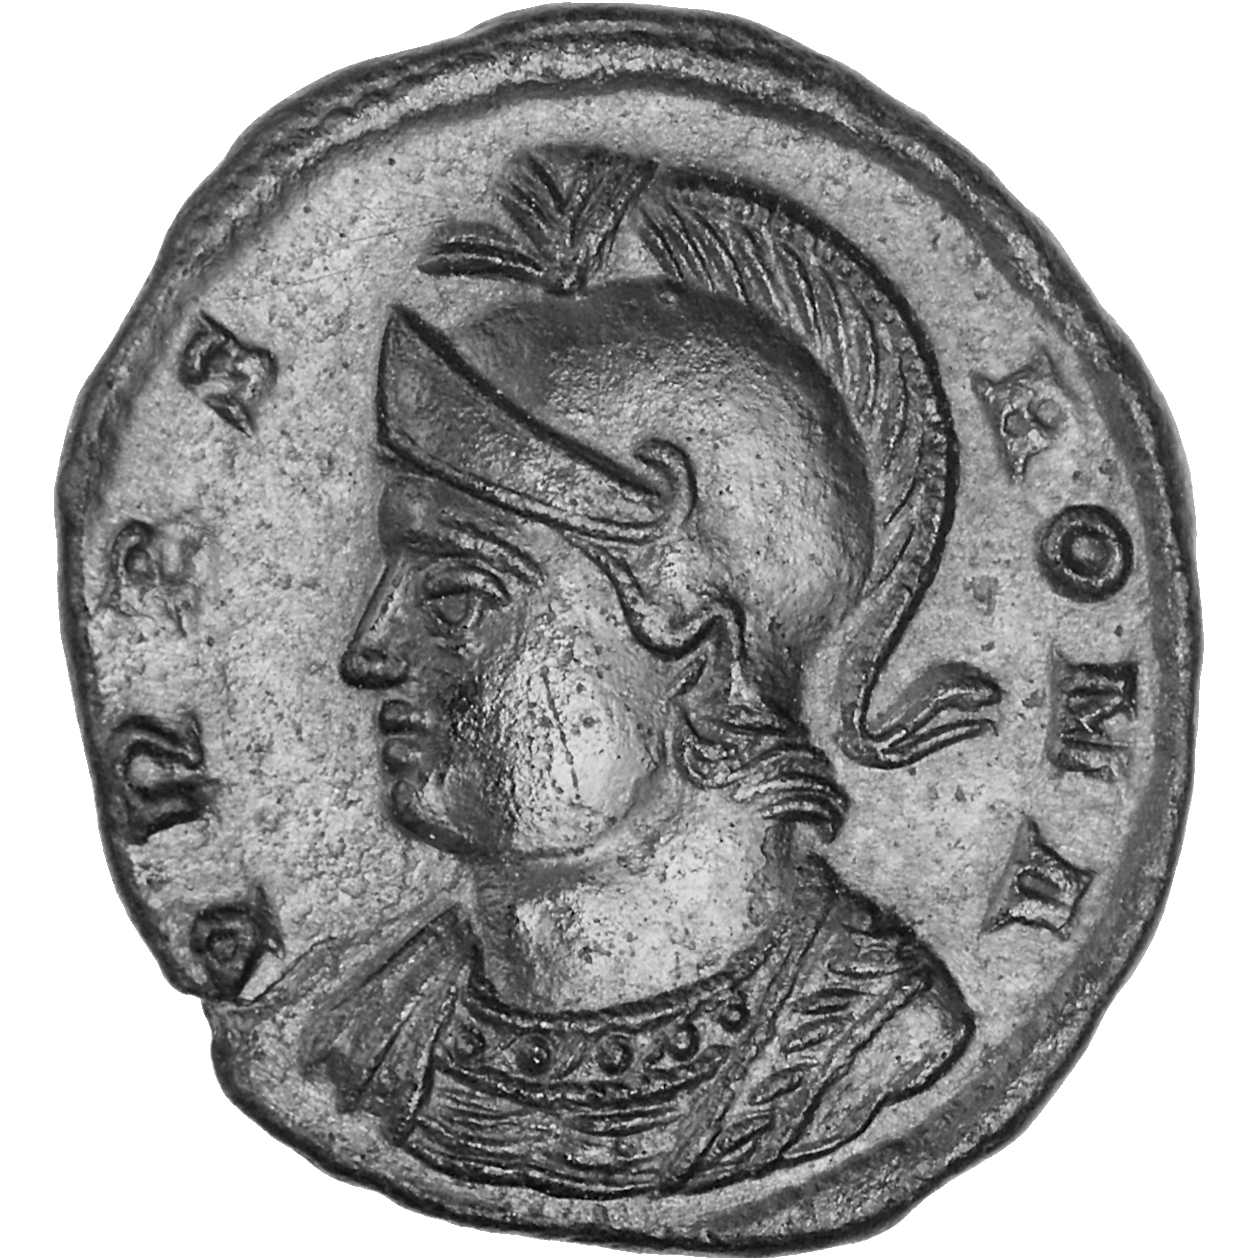 Roman Empire, General Issues of the Cities, Bronze Coin (AE III) (obverse)